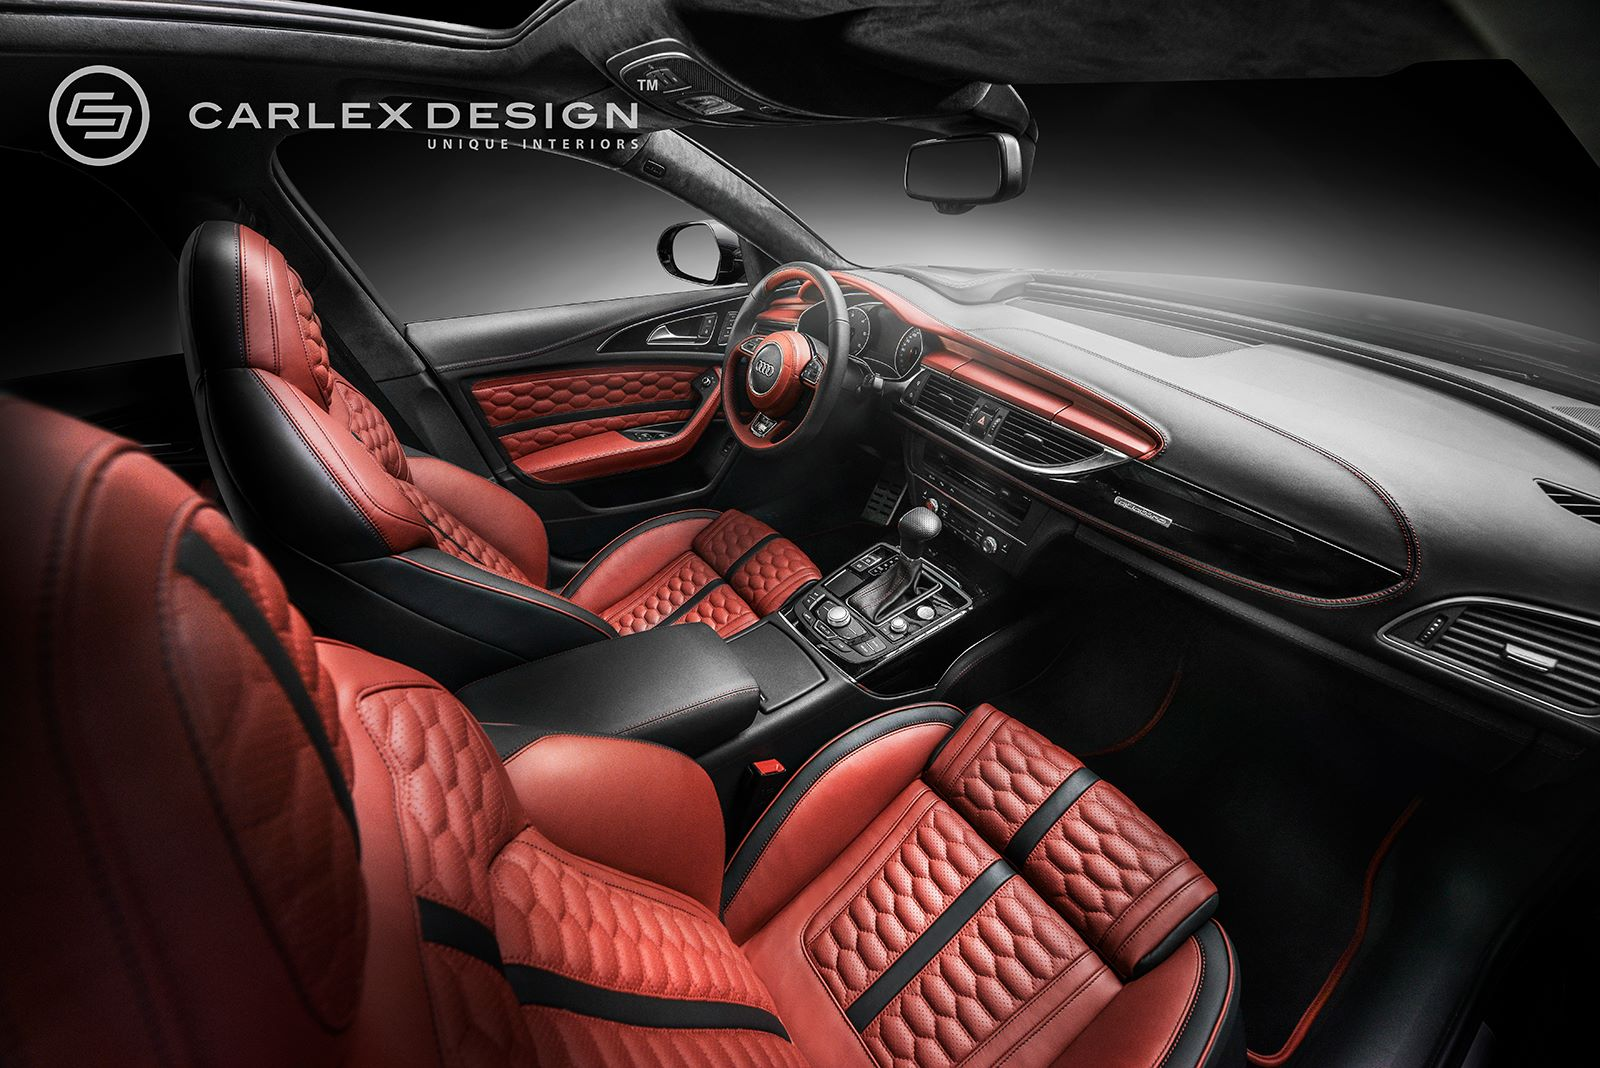 ... Audi A6 Gets Red Honeycomb Interior From Carlex Design ...